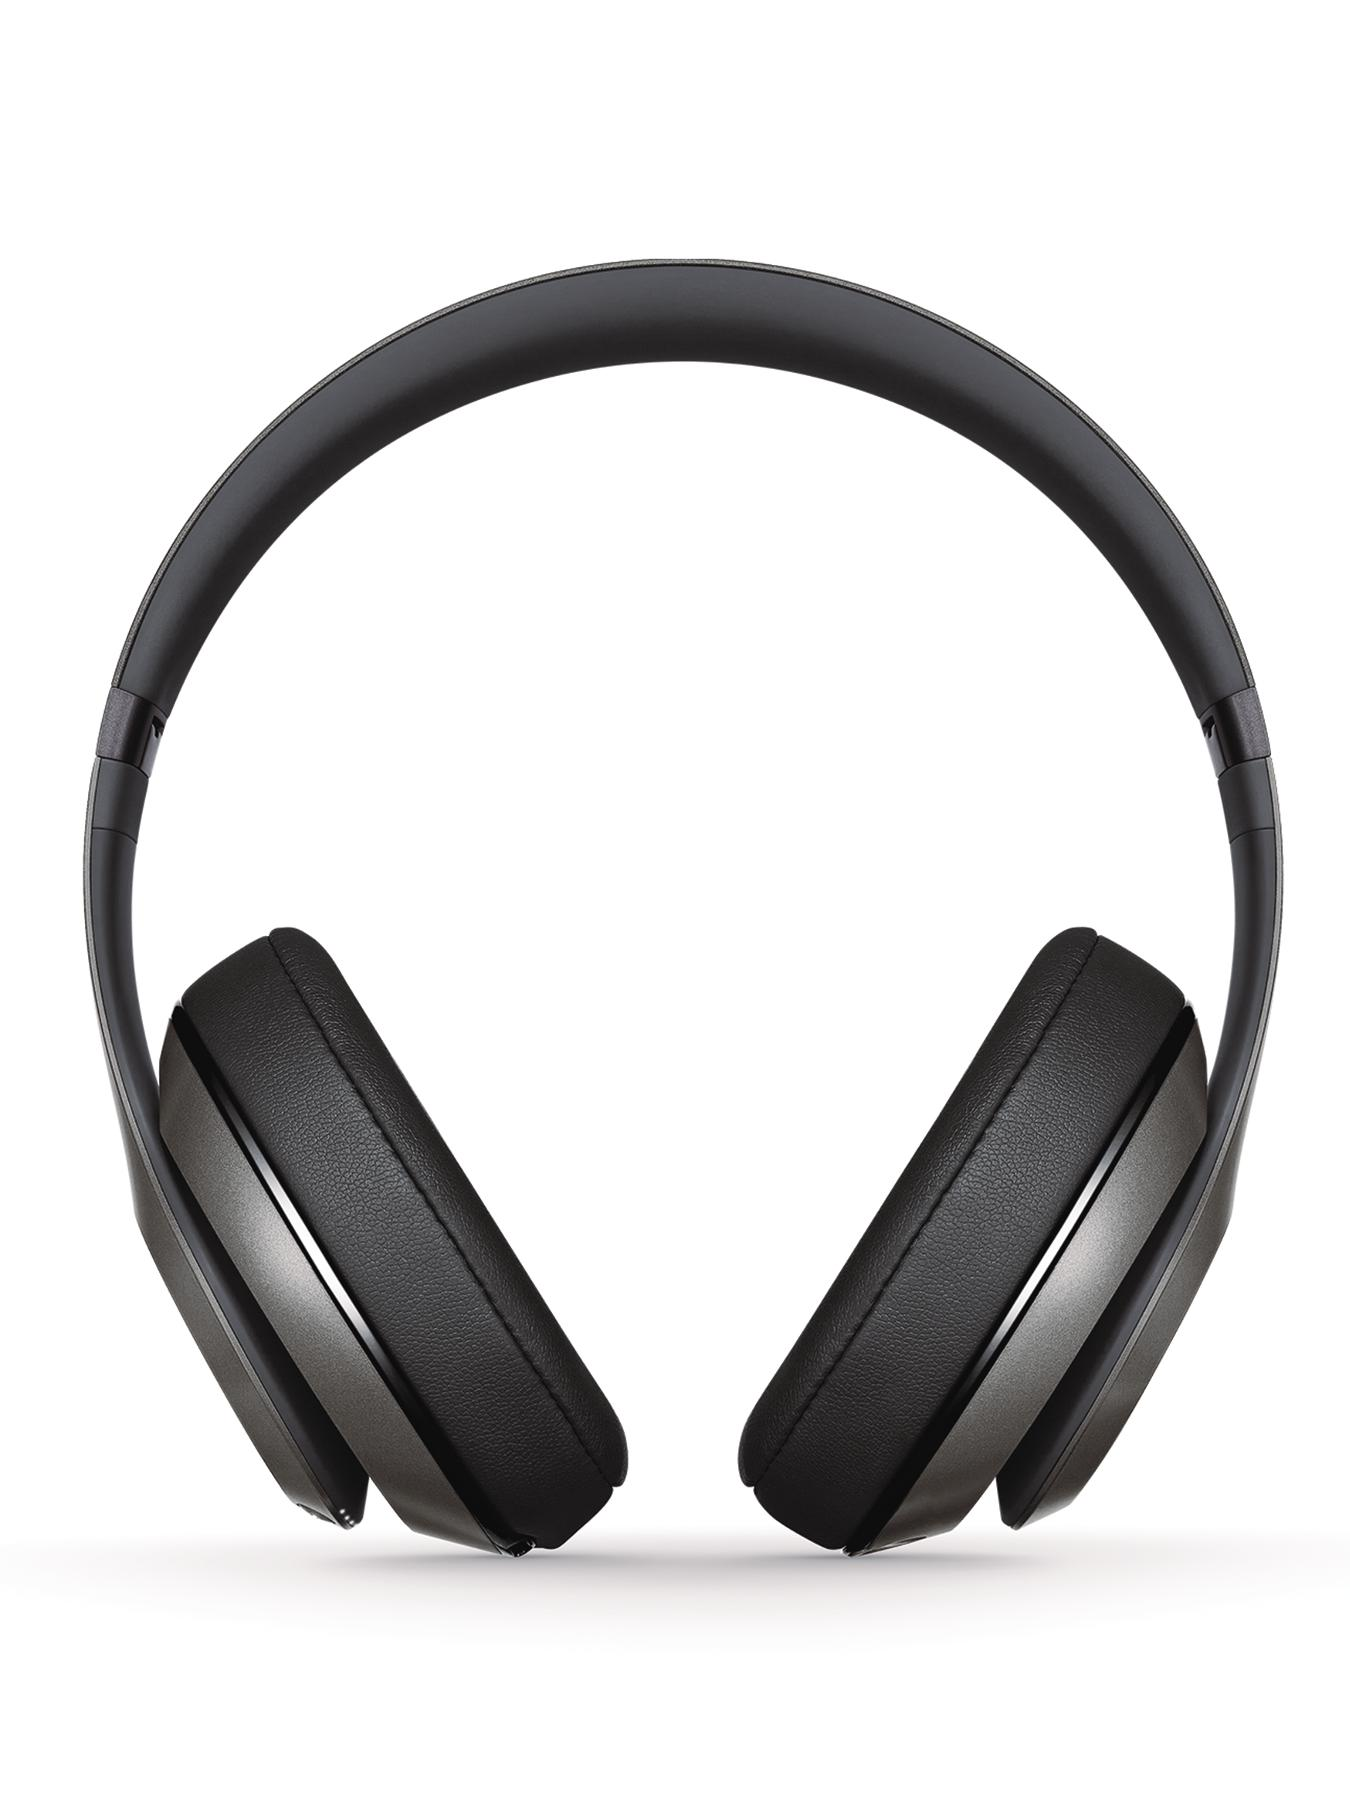 Studio Wireless Headphones - Titanium